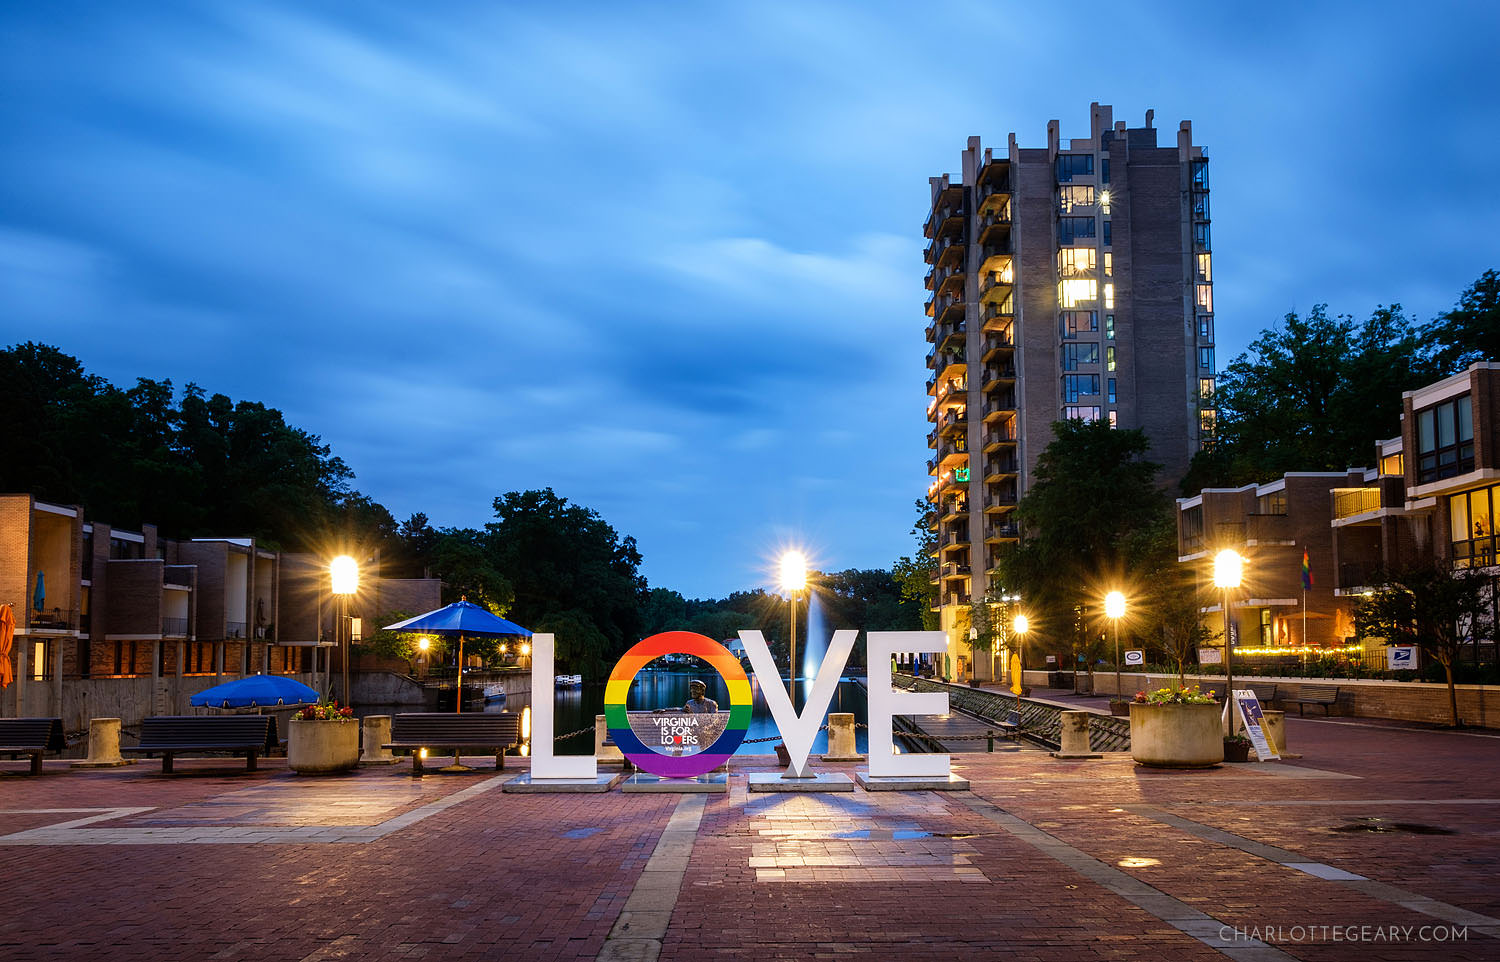 The Virginia is for Lovers sign at Lake Anne Plaza (Reston, Virginia)